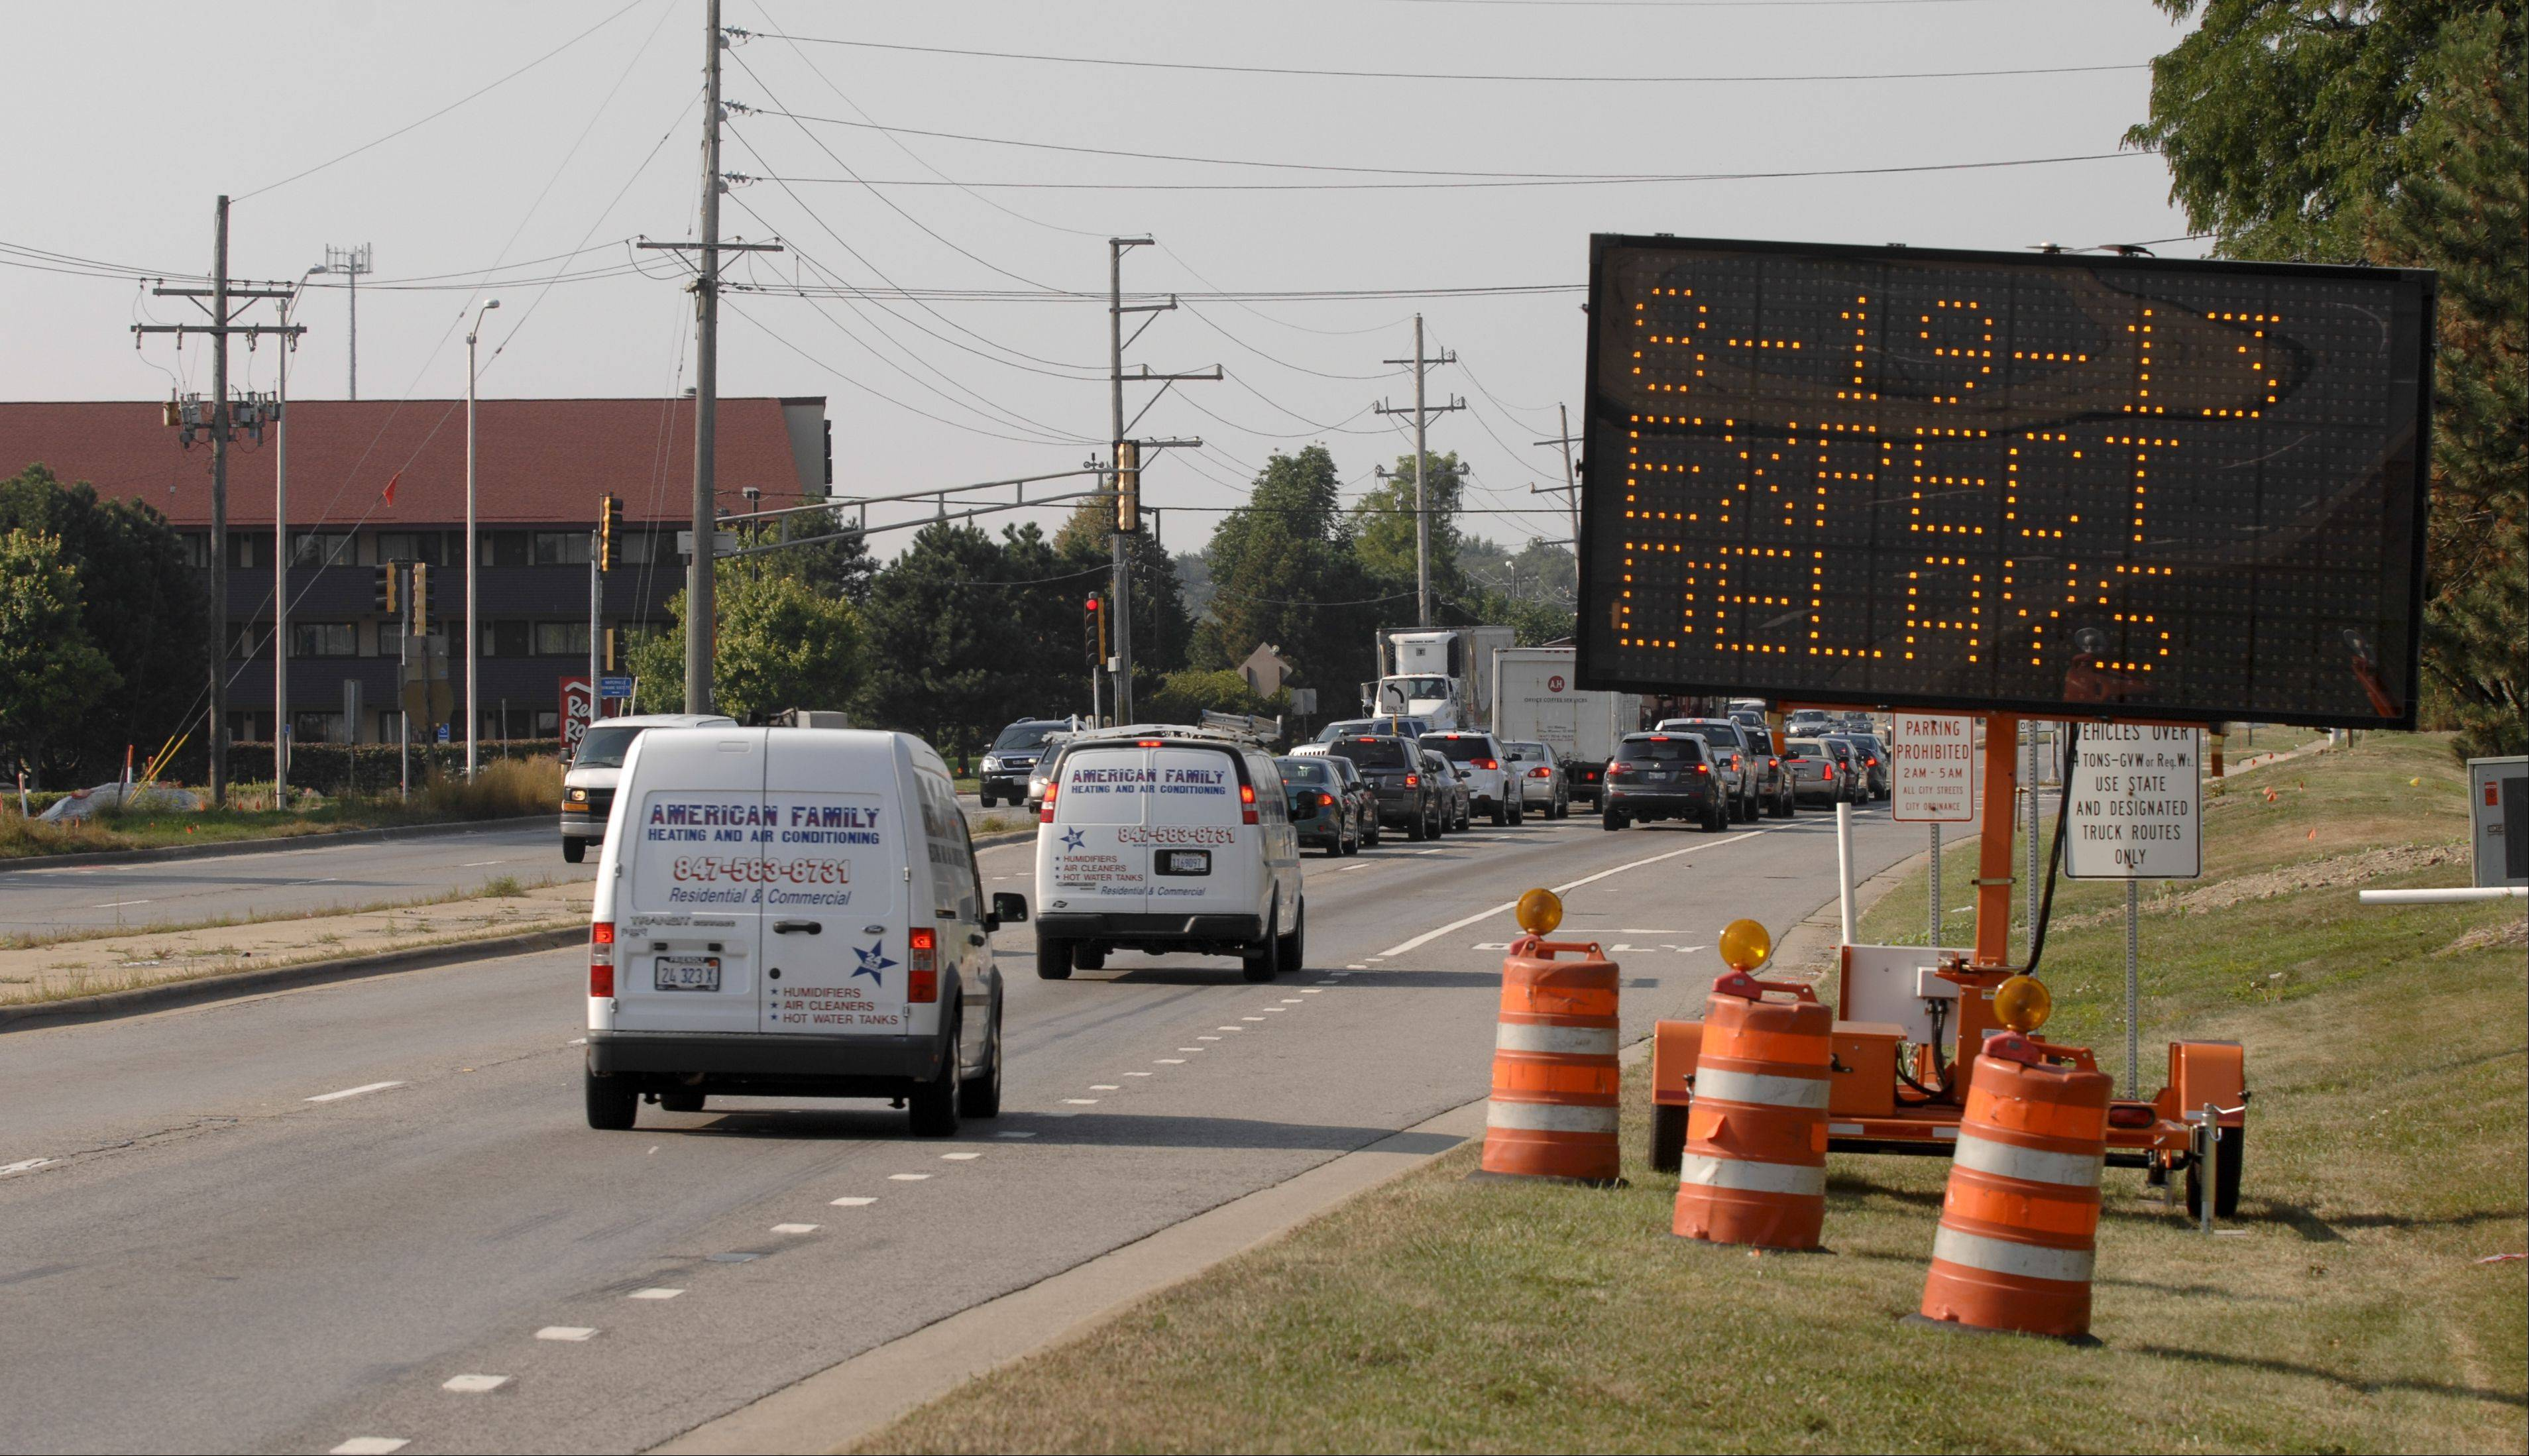 A sign warns drivers about construction that started Monday along Route 59 from Ferry Road south to Aurora Avenue/New York Street in Naperville. Crews first will be relocating utilities and setting up barricades to prepare for the two-year widening project.